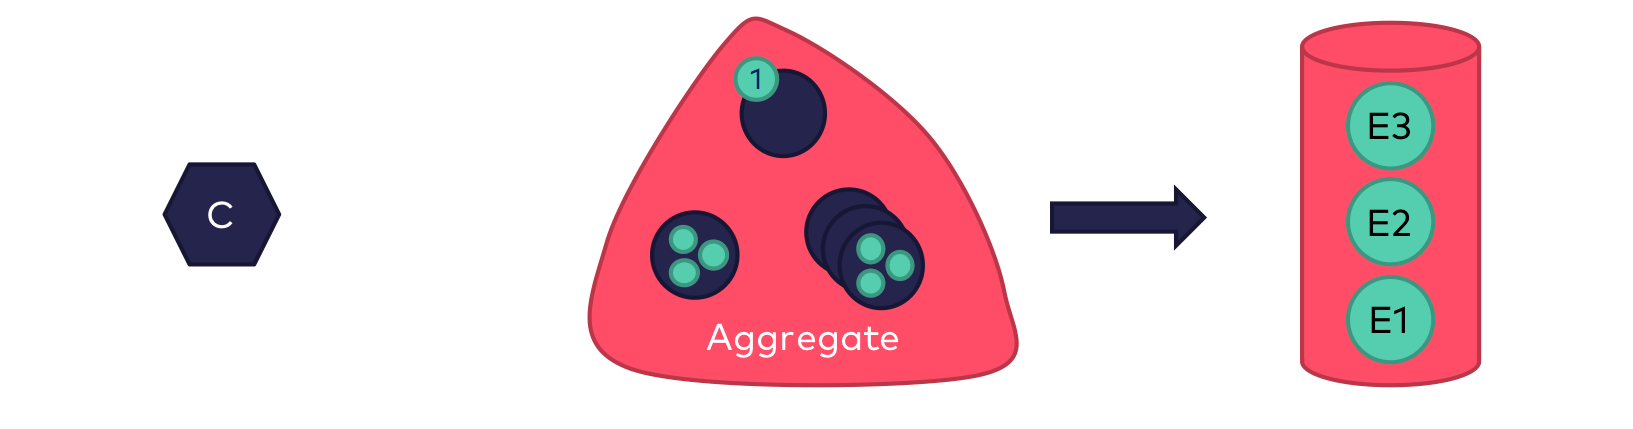 As a consequence of the processing of the invocation, the aggregate generates an event (or several events), including the state that is required for later reconstruction of the state in the aggregate. The event is persisted so that it can be used for future invocations to this aggregate to again reconstruct the current state.